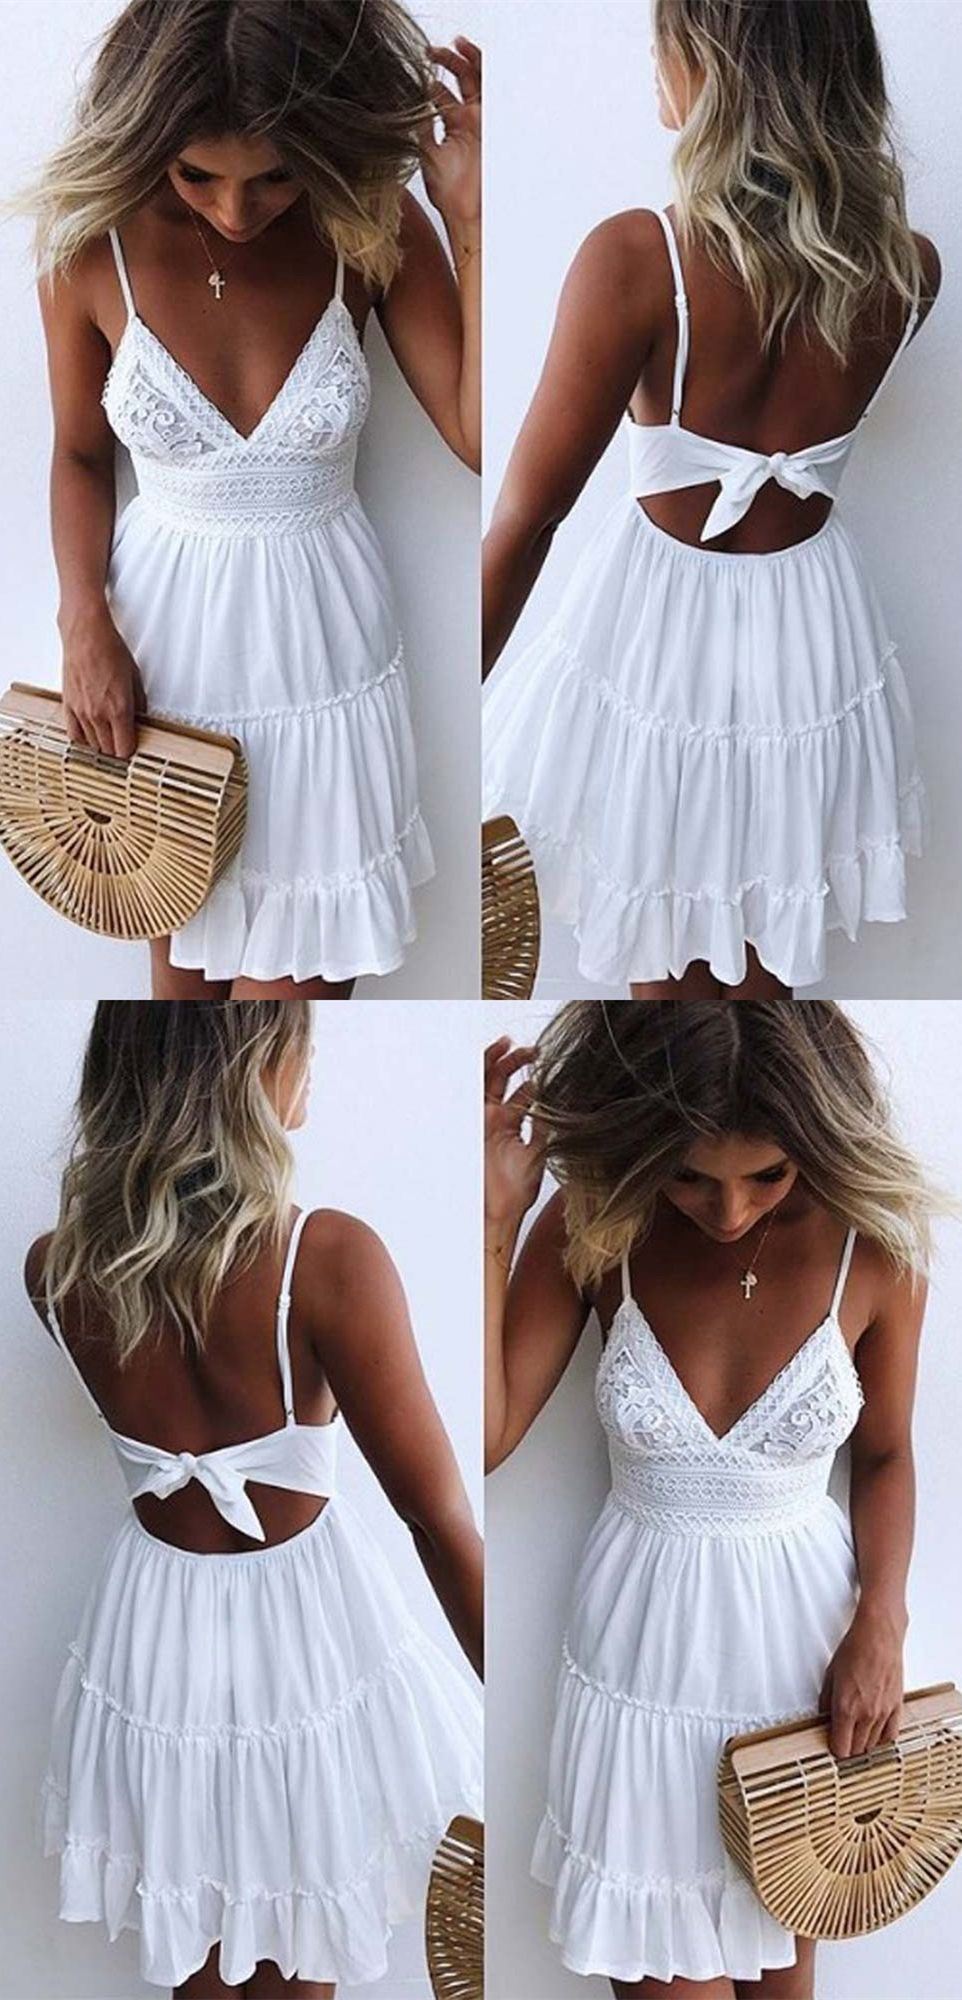 sexy white short lace homecoming dresses for teens, fashion spaghetti straps beach summer dress #summer